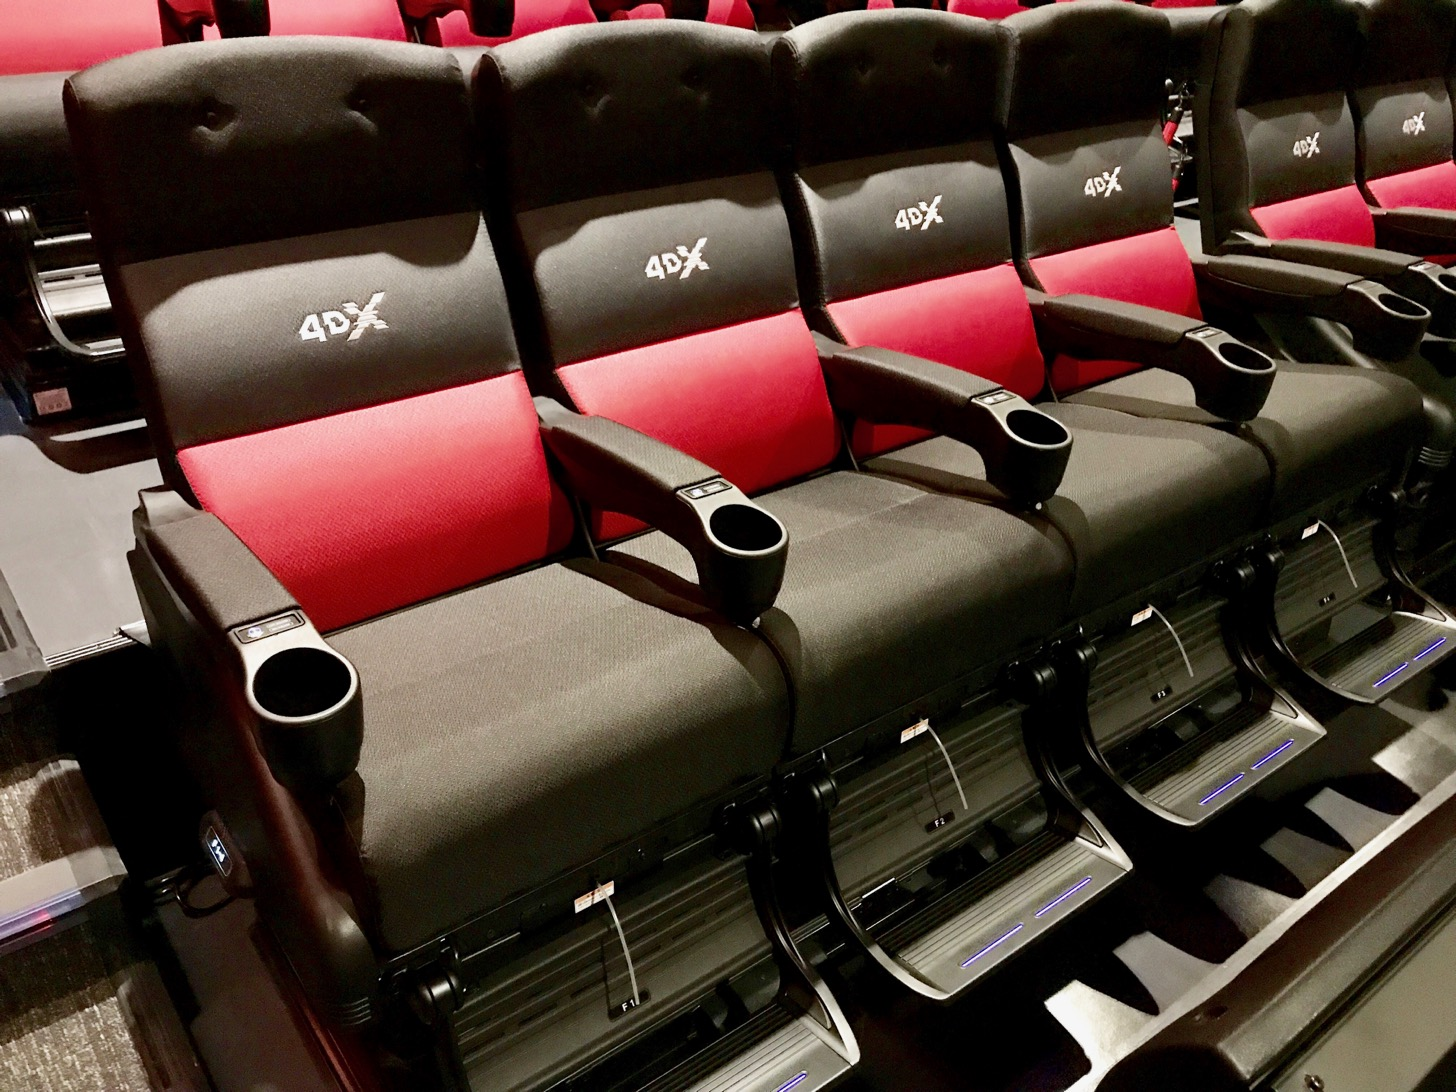 【Aeon Cinema Ciatus Chofu】 The largest cinecon in the Tama area is open! ULTIRA, 4DX, Grand theater is great